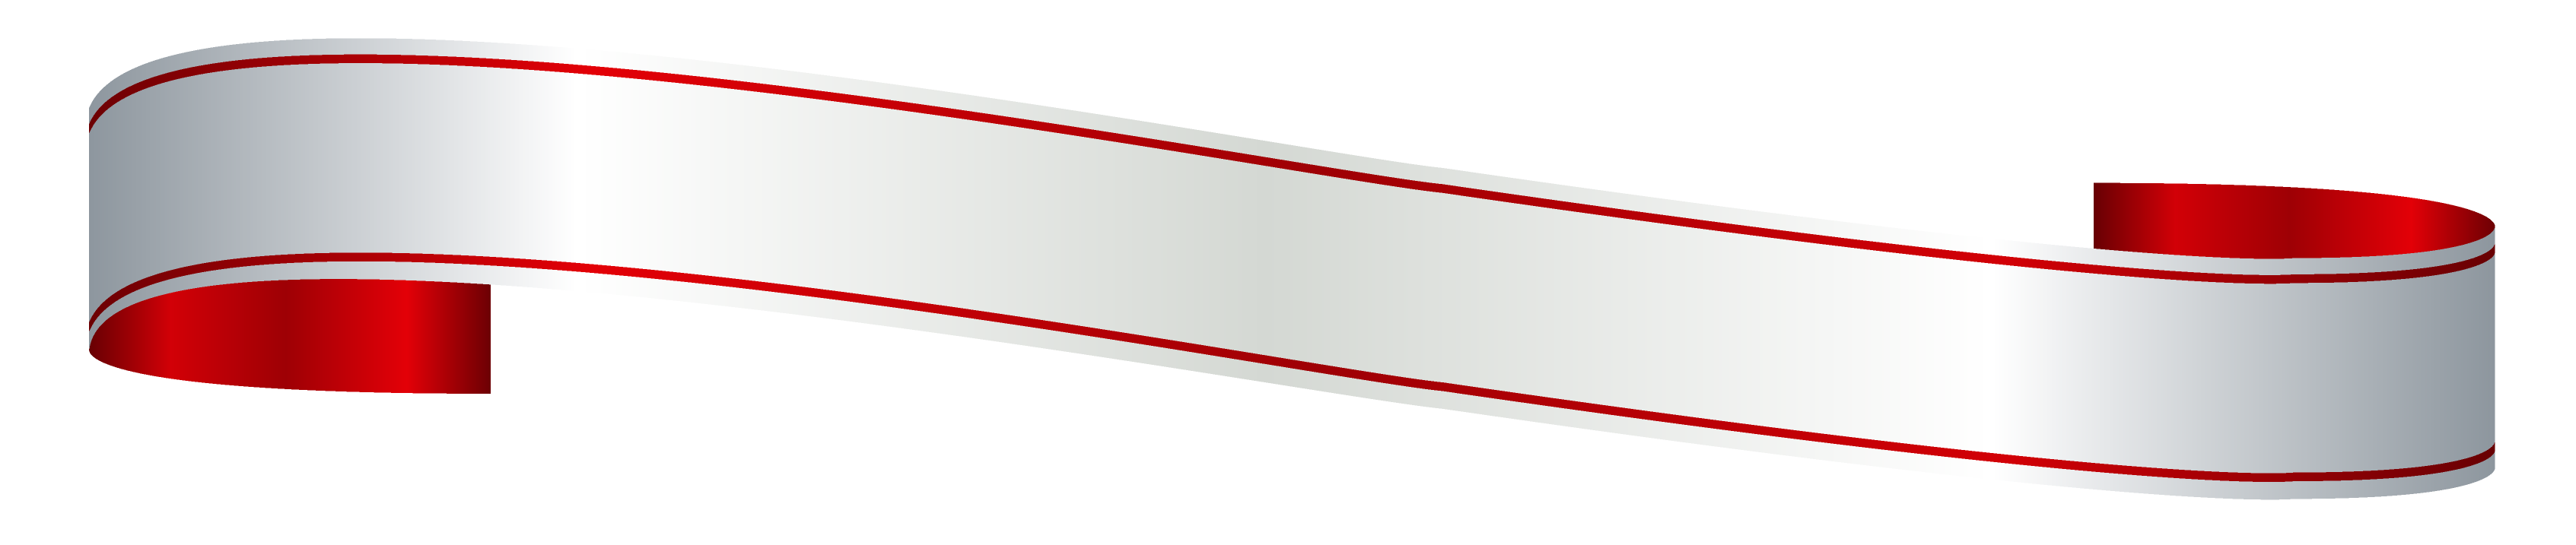 Banner clipart png red white download Free Banner Png, Download Free Clip Art, Free Clip Art on Clipart ... download